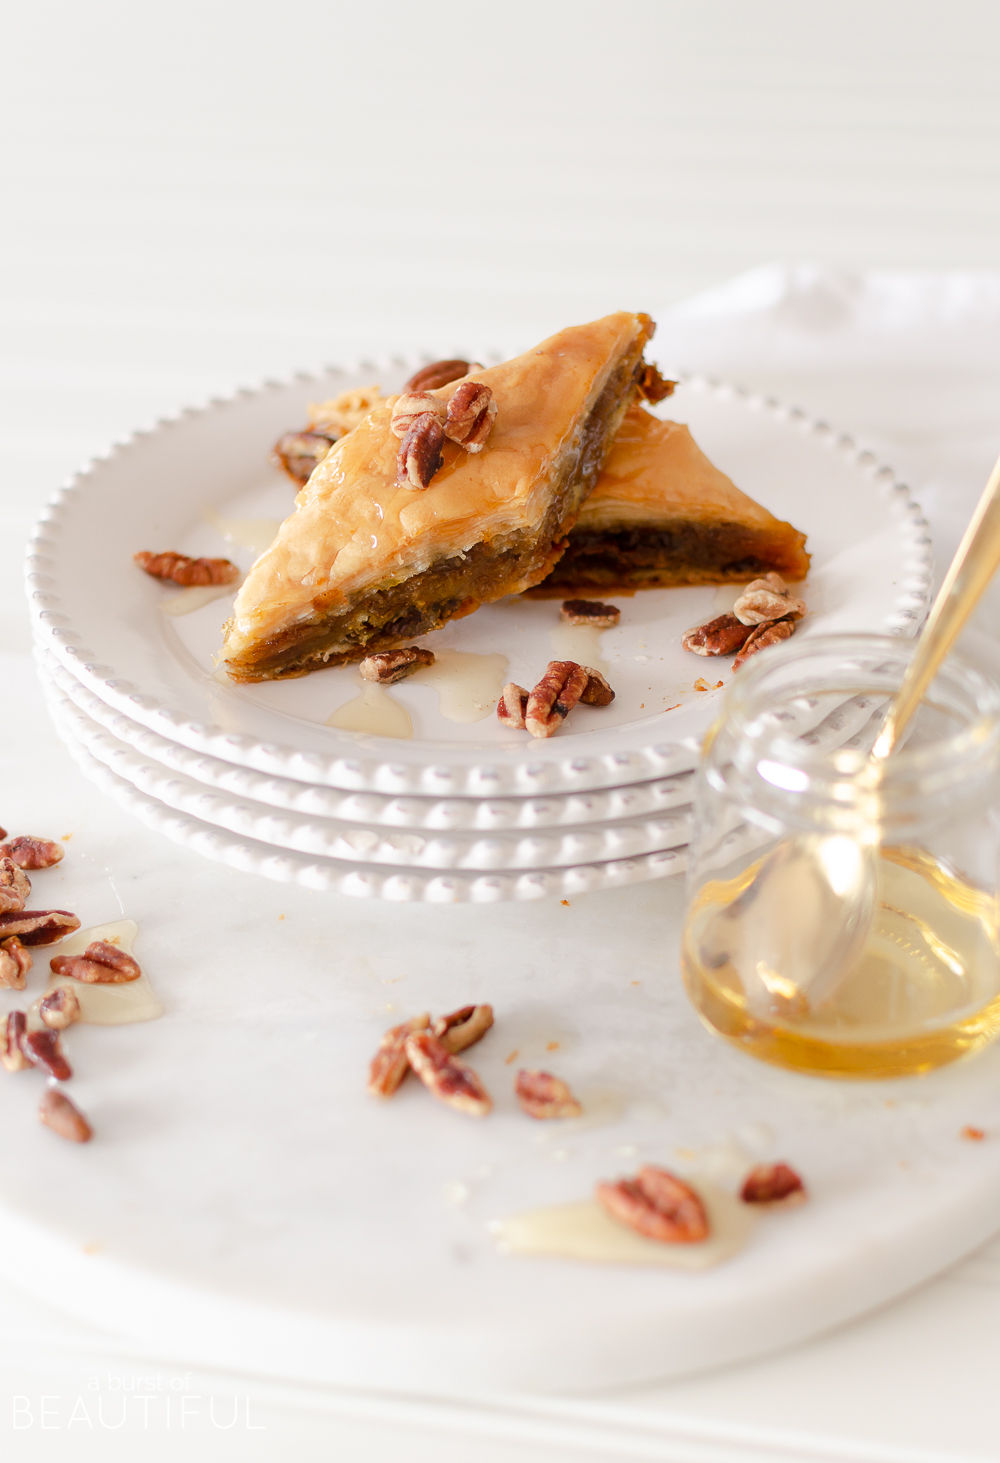 Our Pumpkin Pie Baklava is a modern variation to traditional Greek baklava recipes. Decadent pumpkin pie filling, pecans, and honey baked between layers of phyllopastry create an irresistible fall dessert that will quickly become a seasonal favorite.